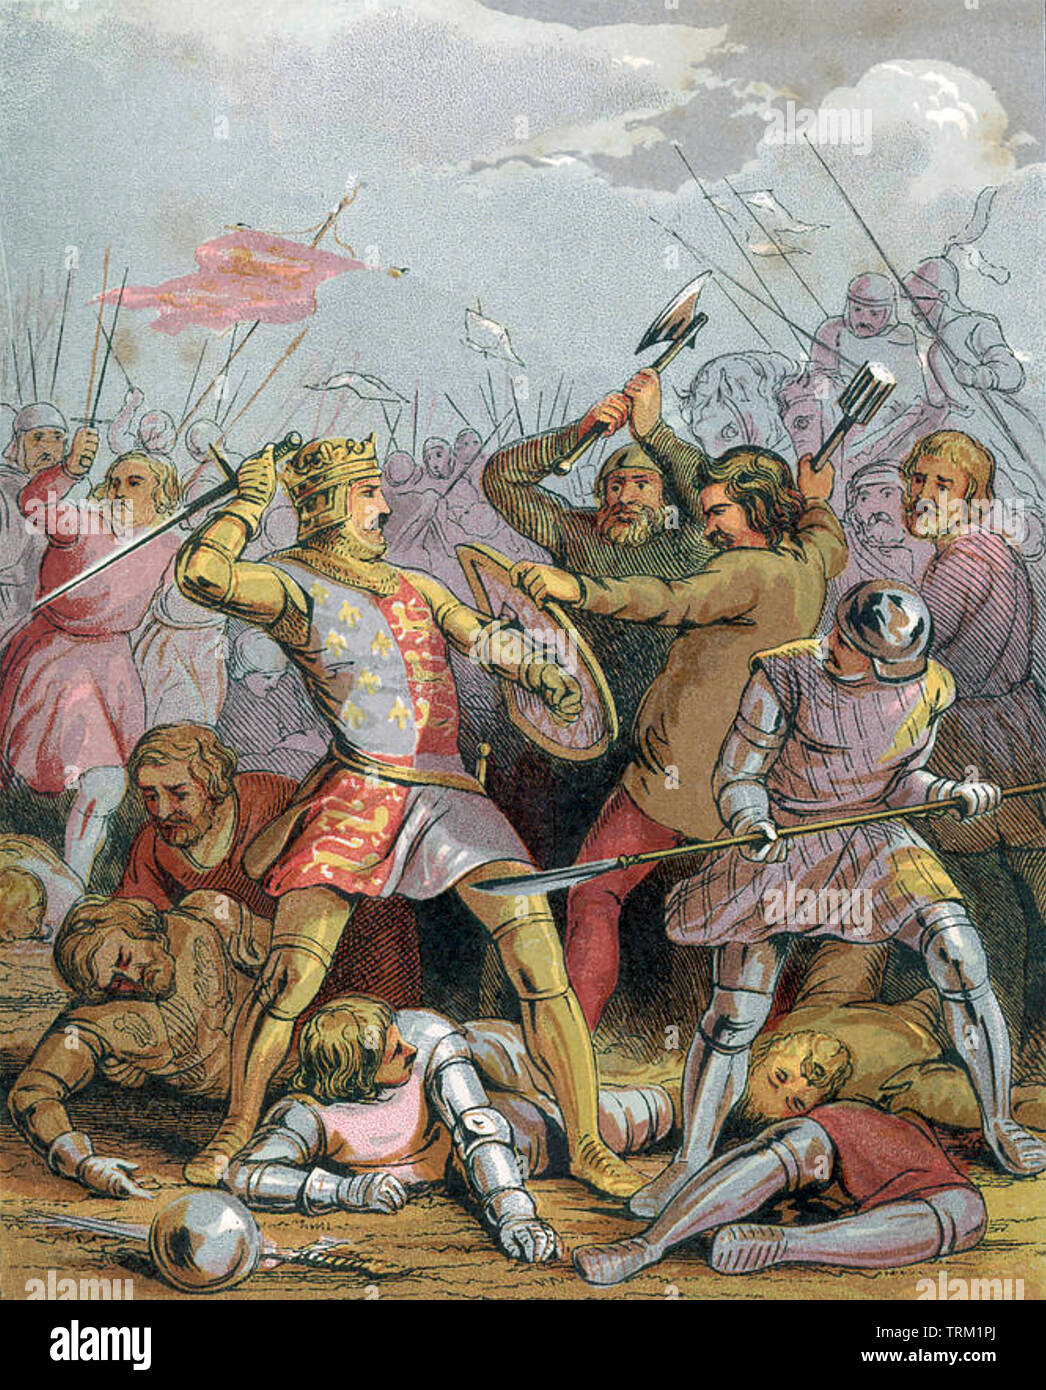 HENRY V OF ENGLAND (1386-1422) fighting during the Hundred Years War in a 19th century artwork - Stock Image